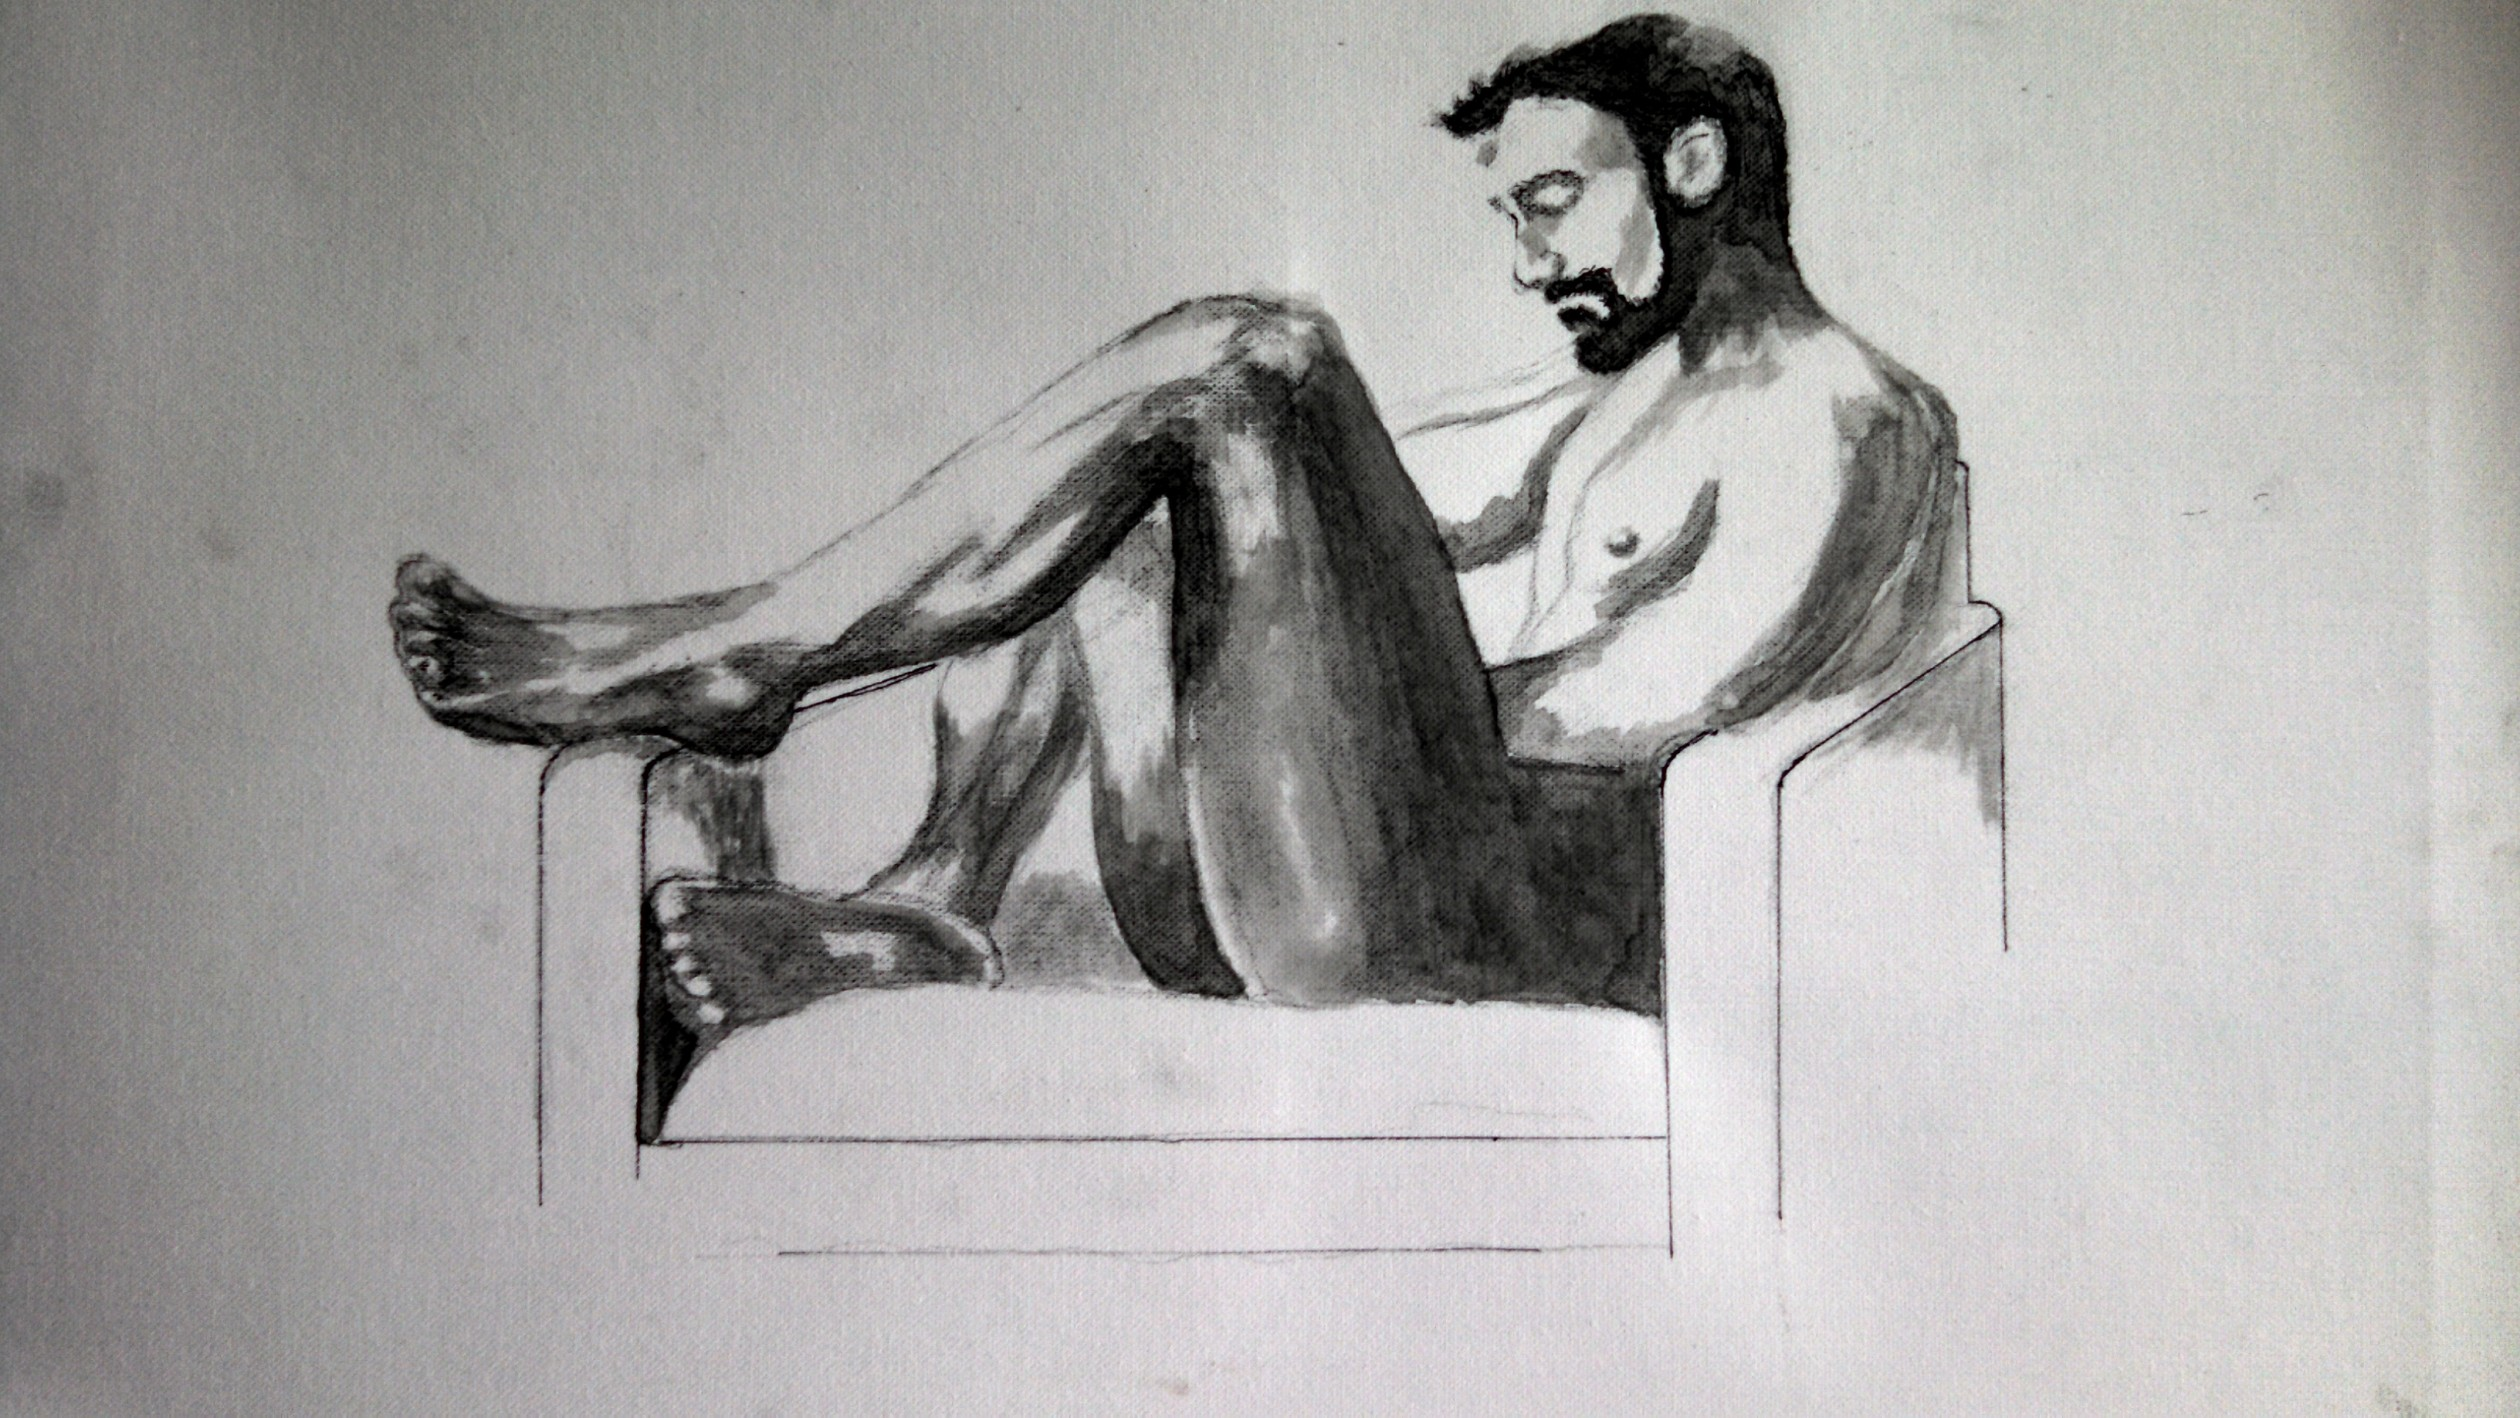 relaxing by Kent Tahsequah (Donated to the UCPPE)